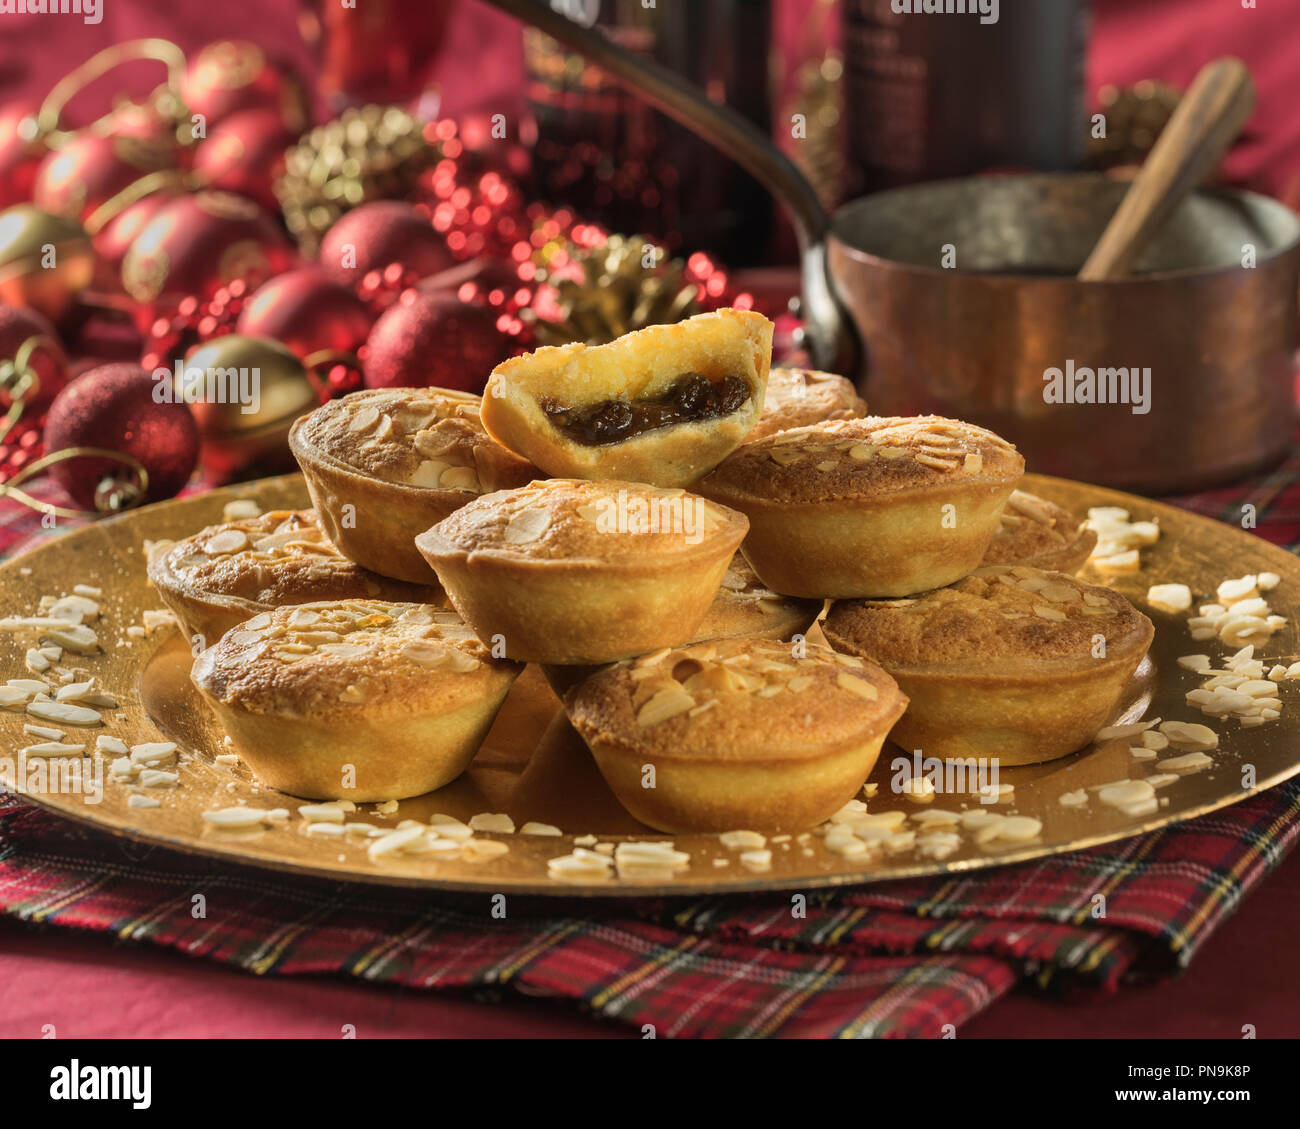 Frangipane mince pies with almond topping.  Festive food UK - Stock Image